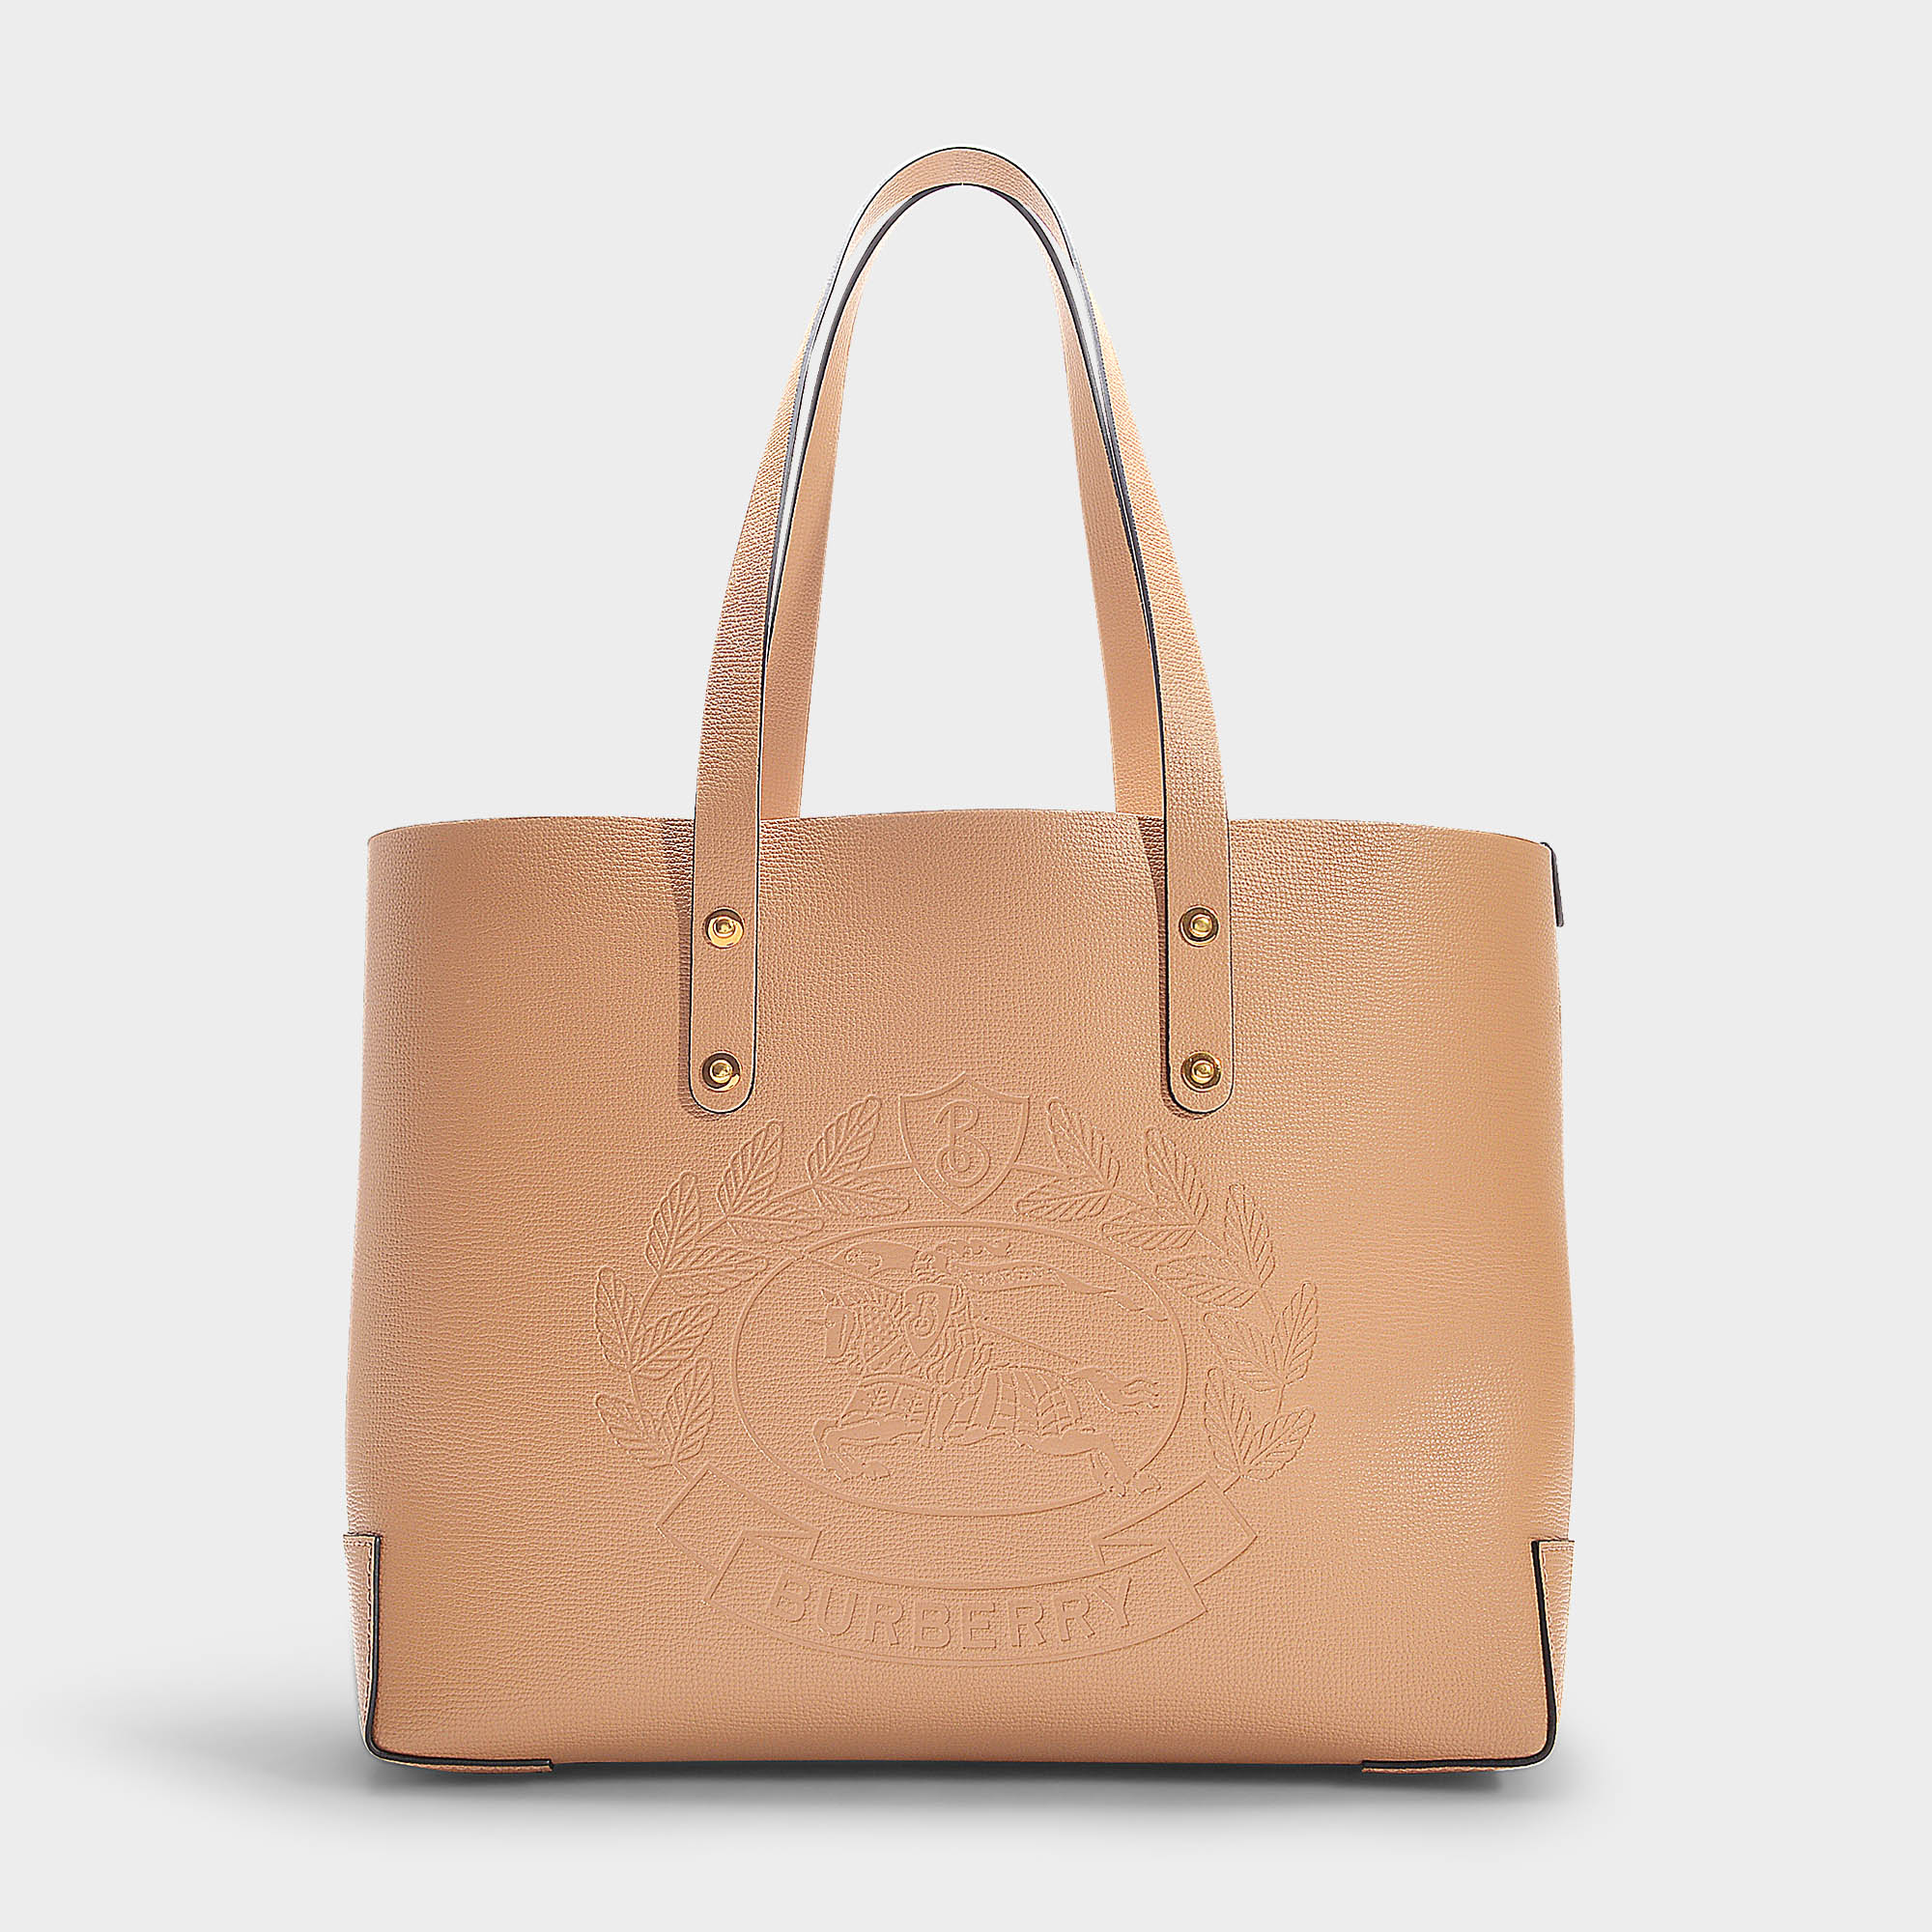 63b2c48e76c5 Burberry Small Embossed Crest Leather Tote - Beige In Neutrals ...